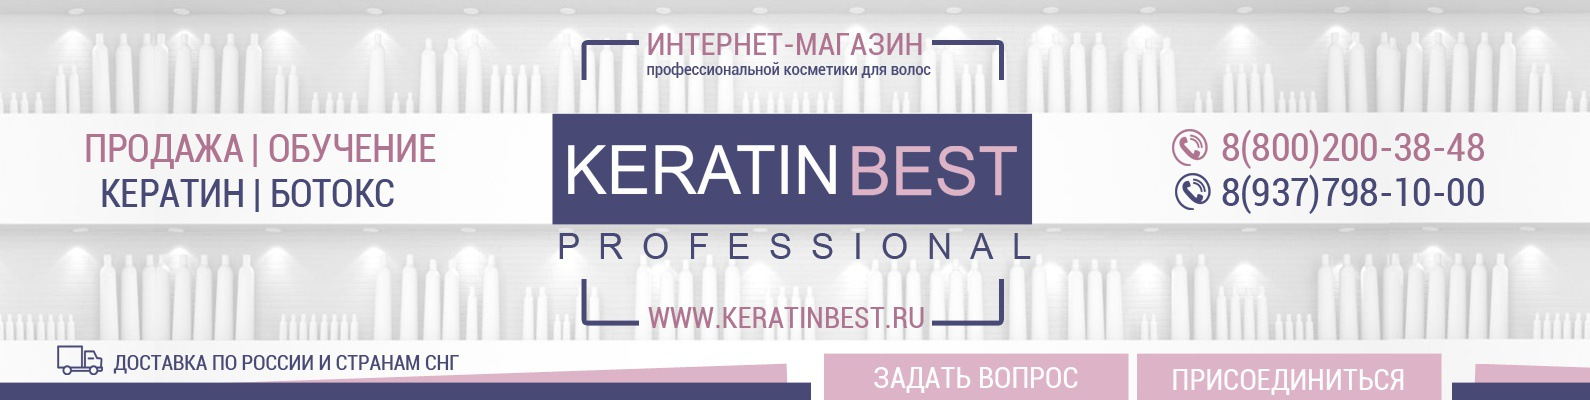 Keratinbest Coupons and Promo Code